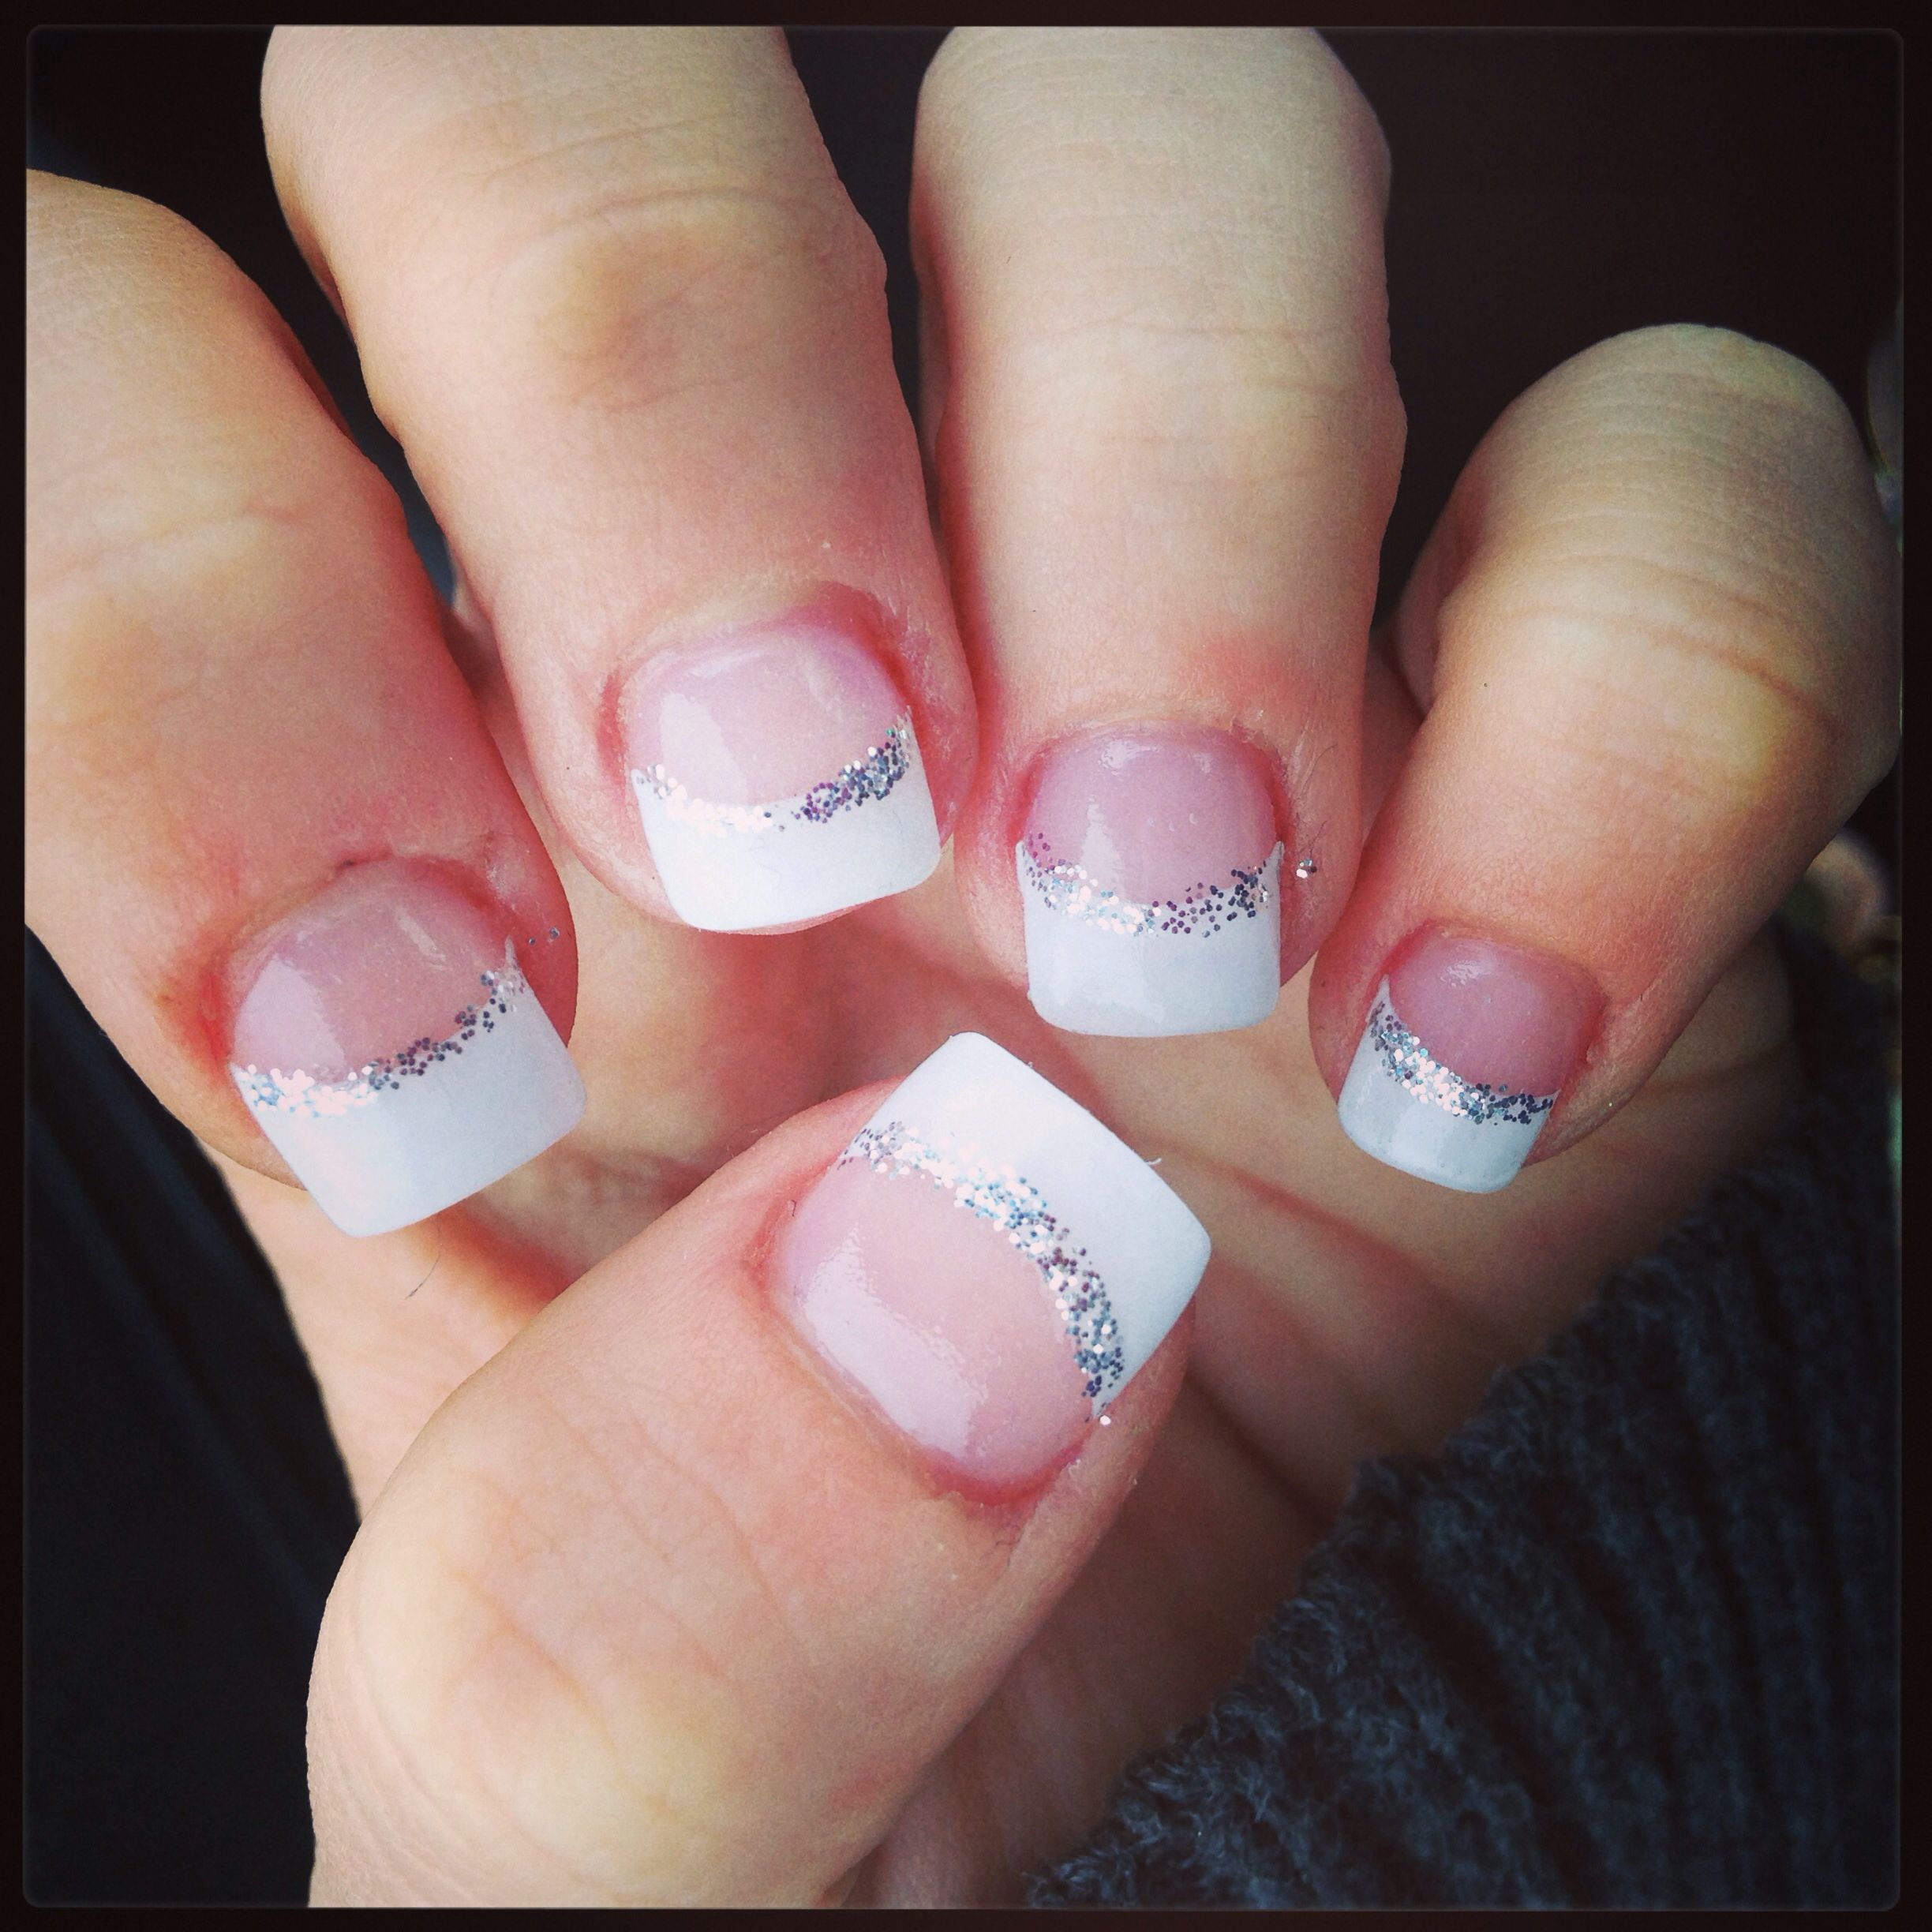 Acrylic Nails For Prom: French Tips With Silver Design